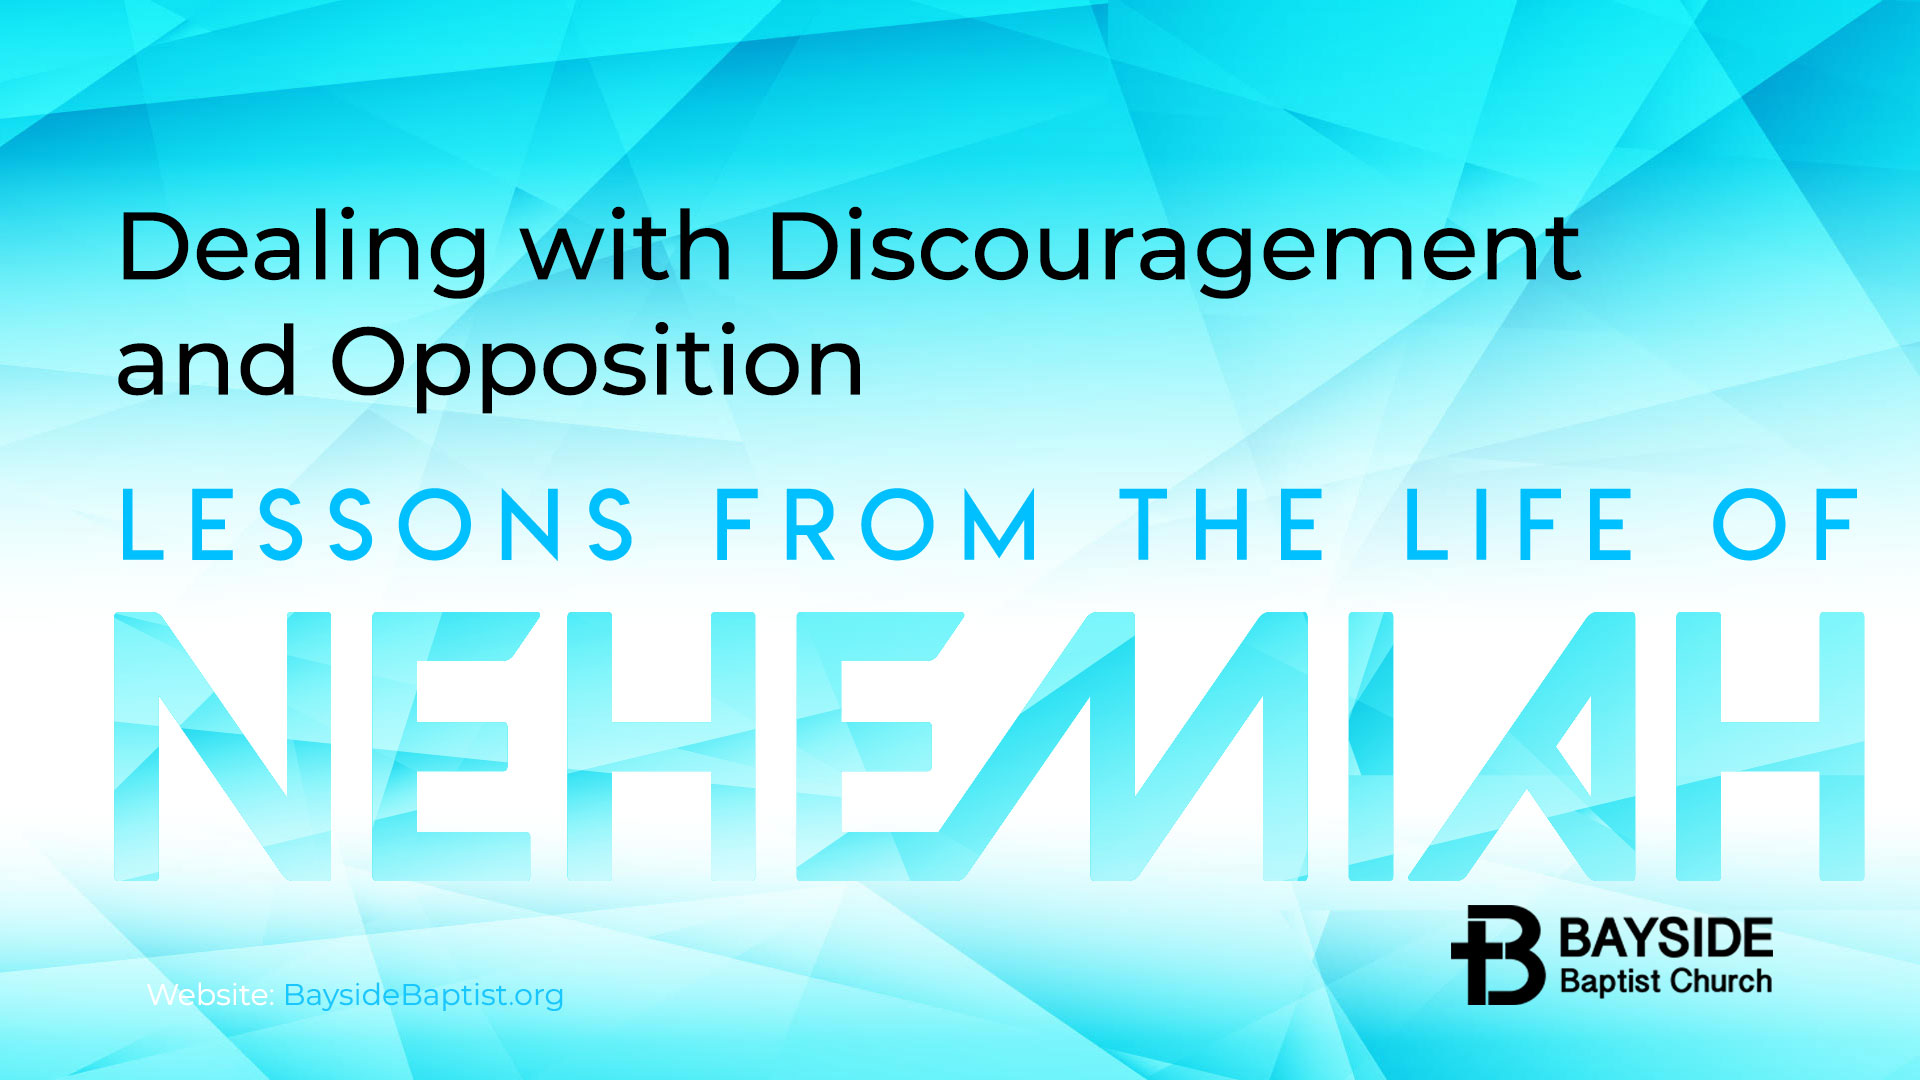 Dealing with Discouragement and Opposition Image